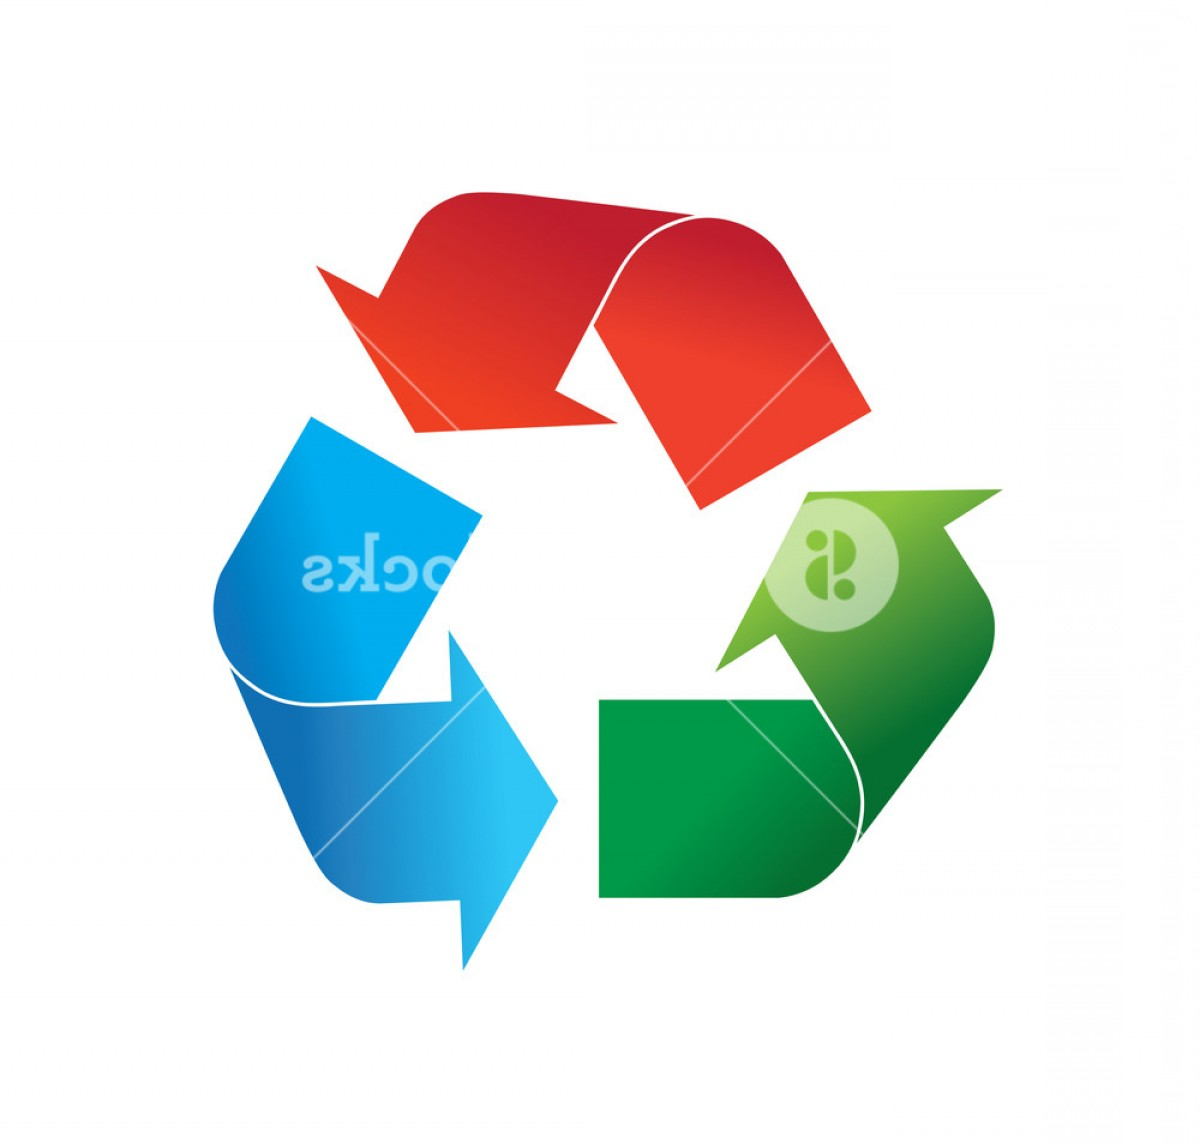 Recycle Icon Vector Red: Multi Colored Red Green And Blue Recycling Logo Icon Vector Illustration Isolated On White Background Rhaqxtmejqzpuzc